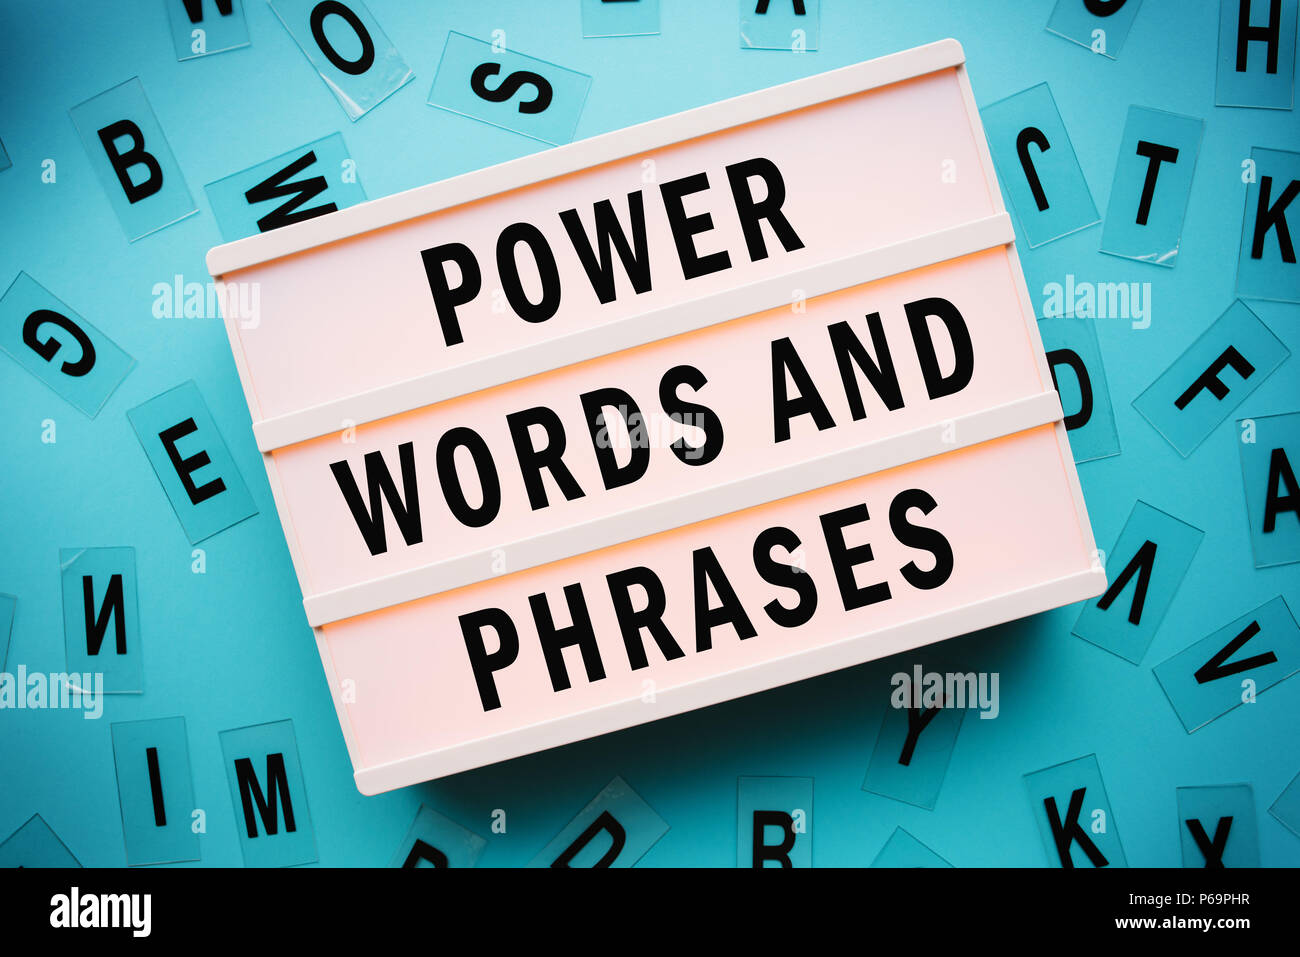 Power Words And Phrases Concept With Lightbox Stock Photo